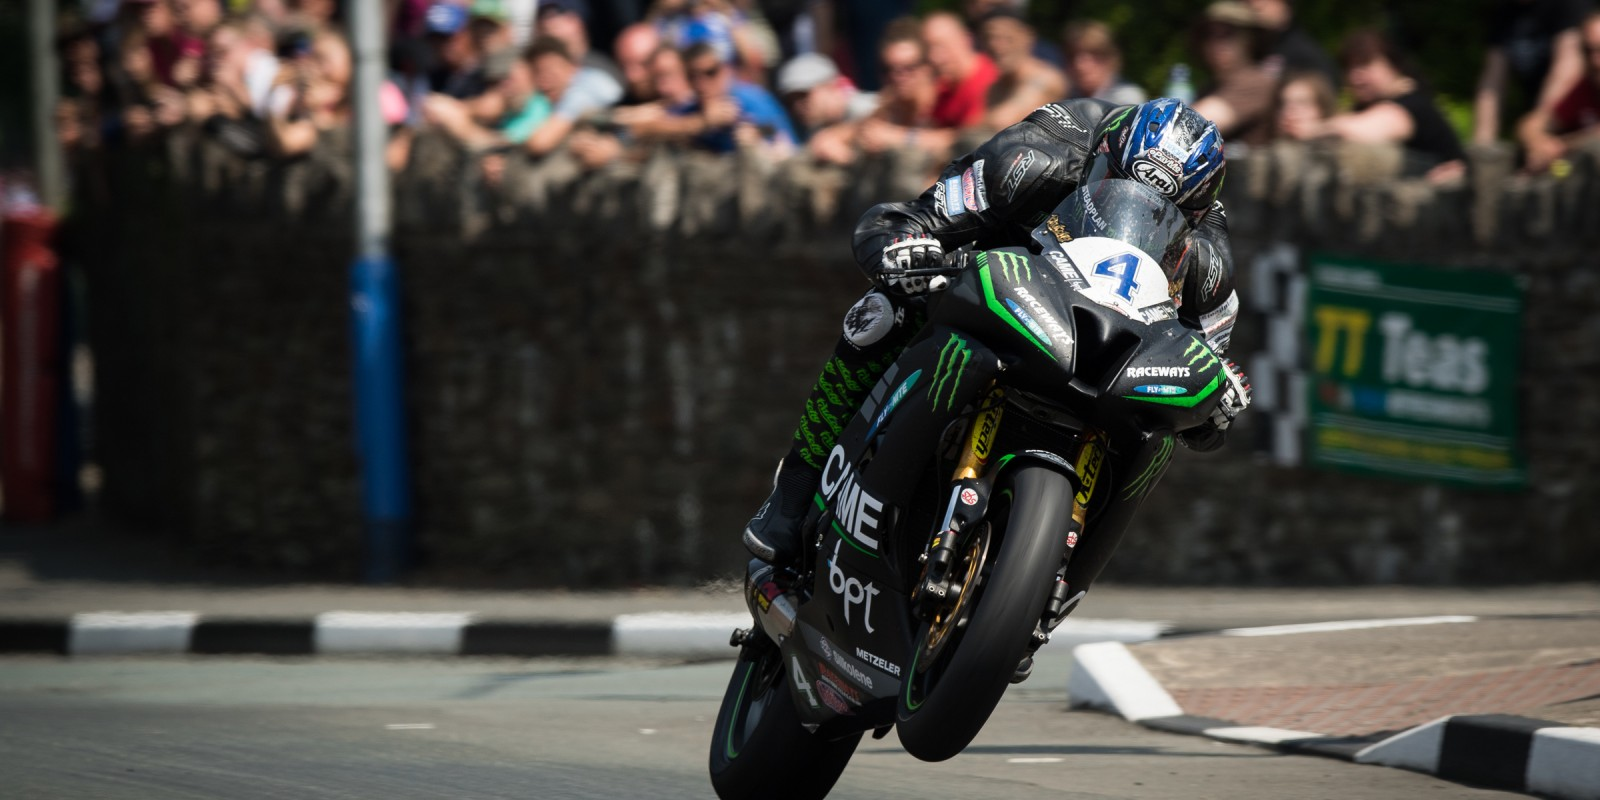 Images from the 2016 Isle of Man TT - 8th June